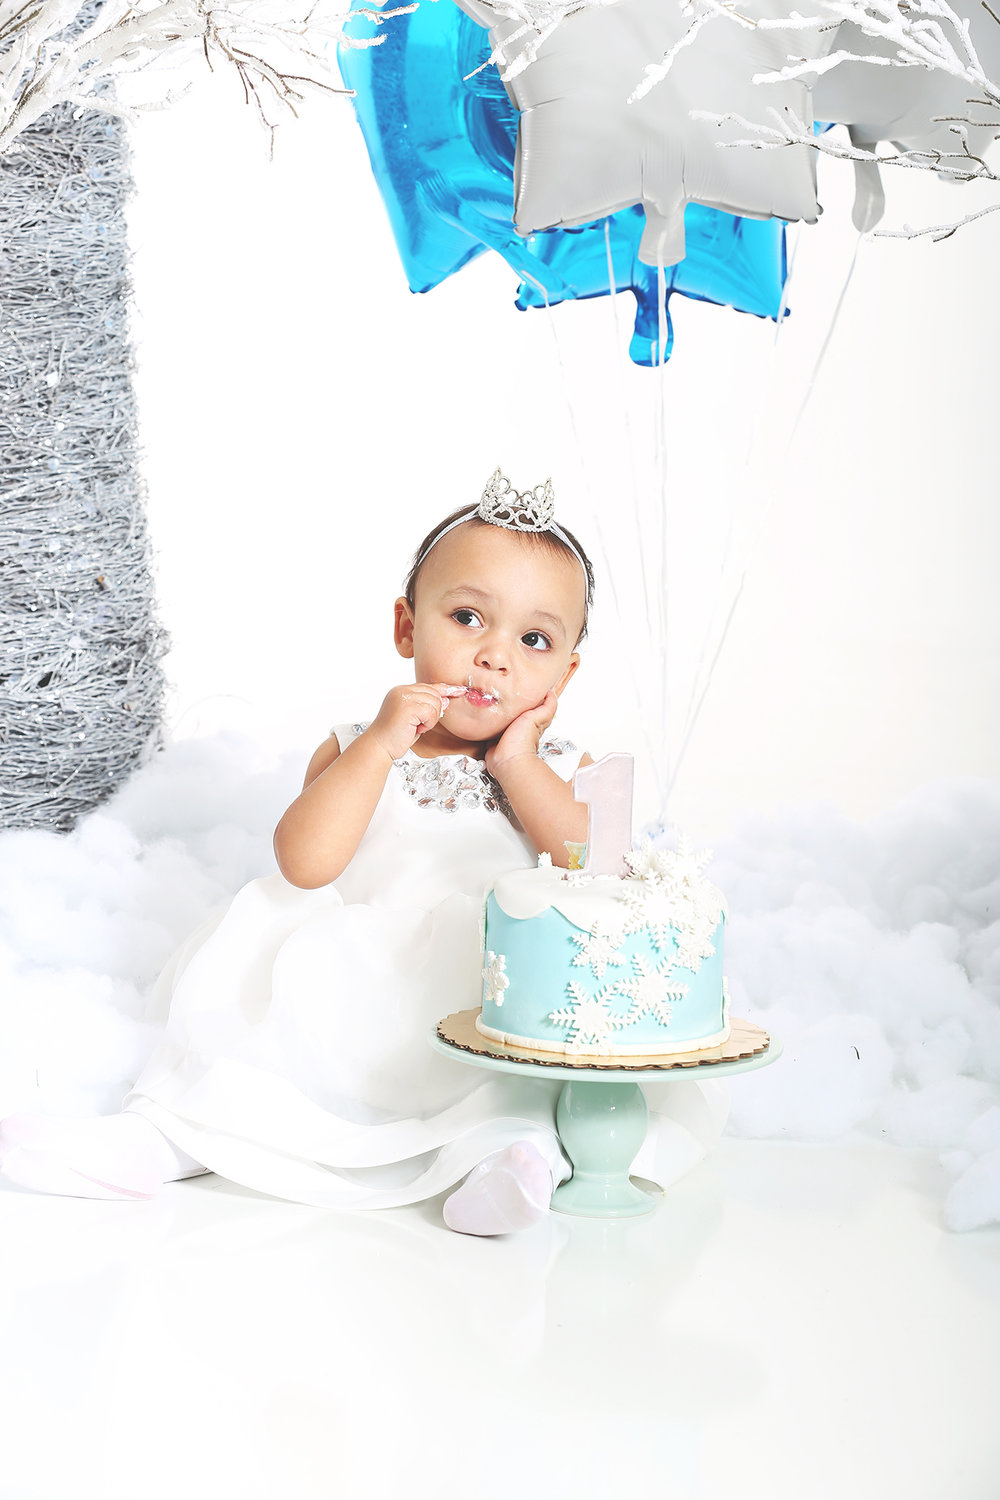 cake-smash-kids-birthday-portrait-photo.jpg